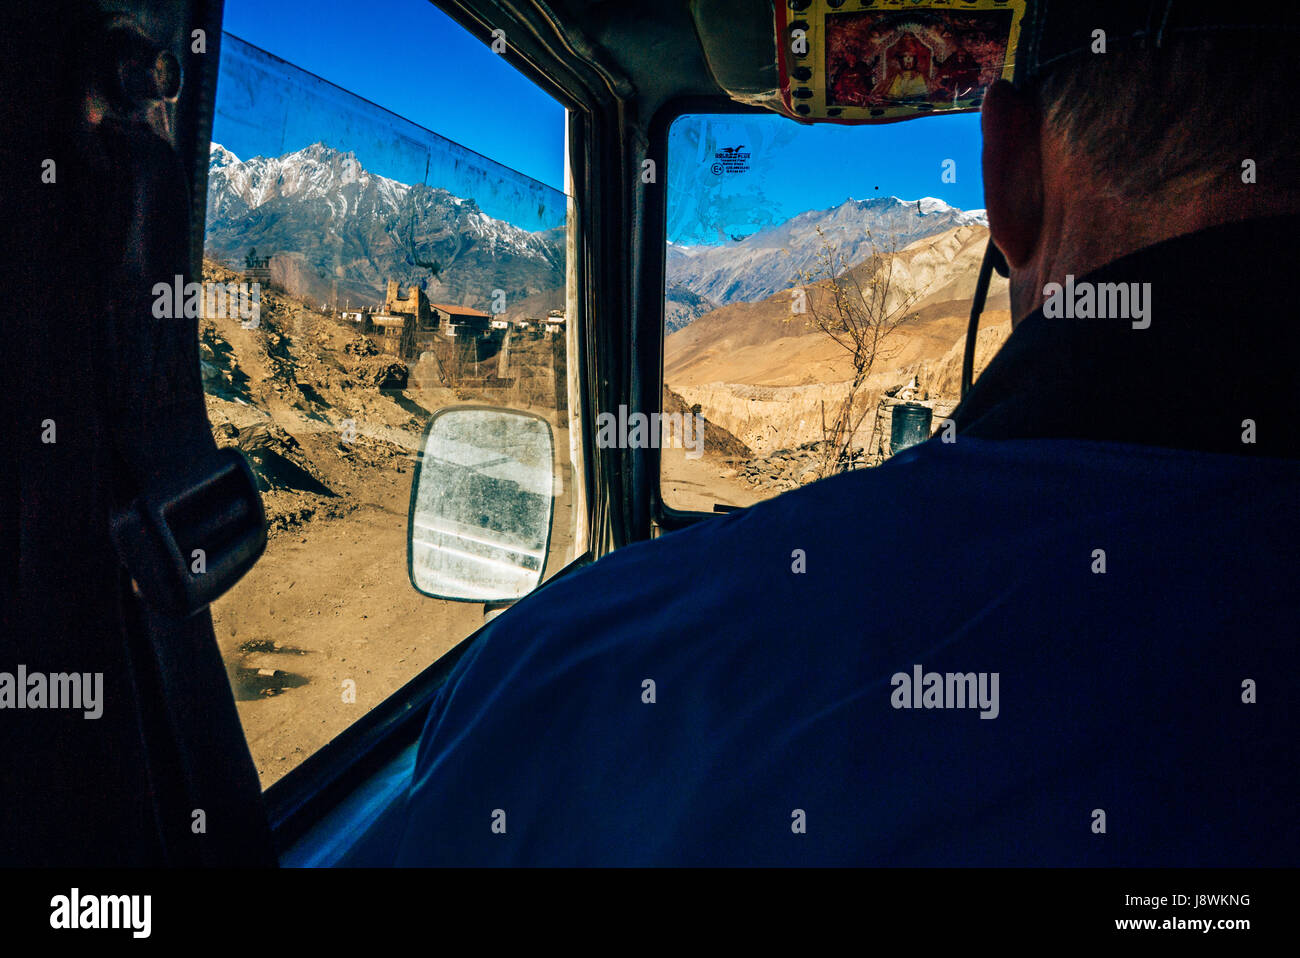 Driving on rugged mountain roads in the Himalayan mountains of Nepal. - Stock Image